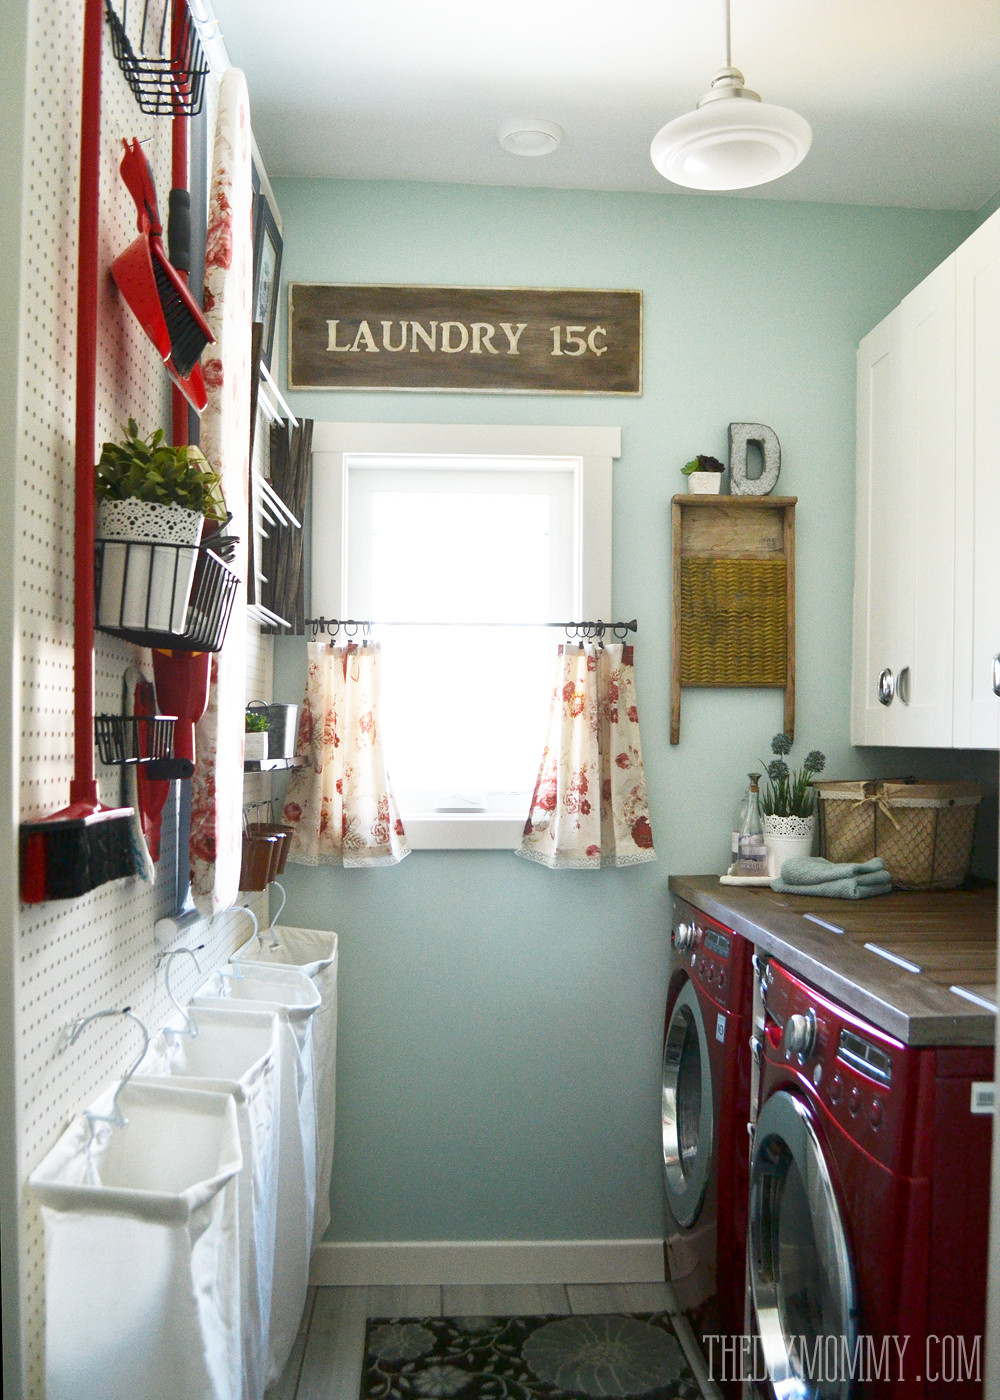 Best ideas about Diy Laundry Room Ideas . Save or Pin 2016 Home Tour Our DIY House Now.